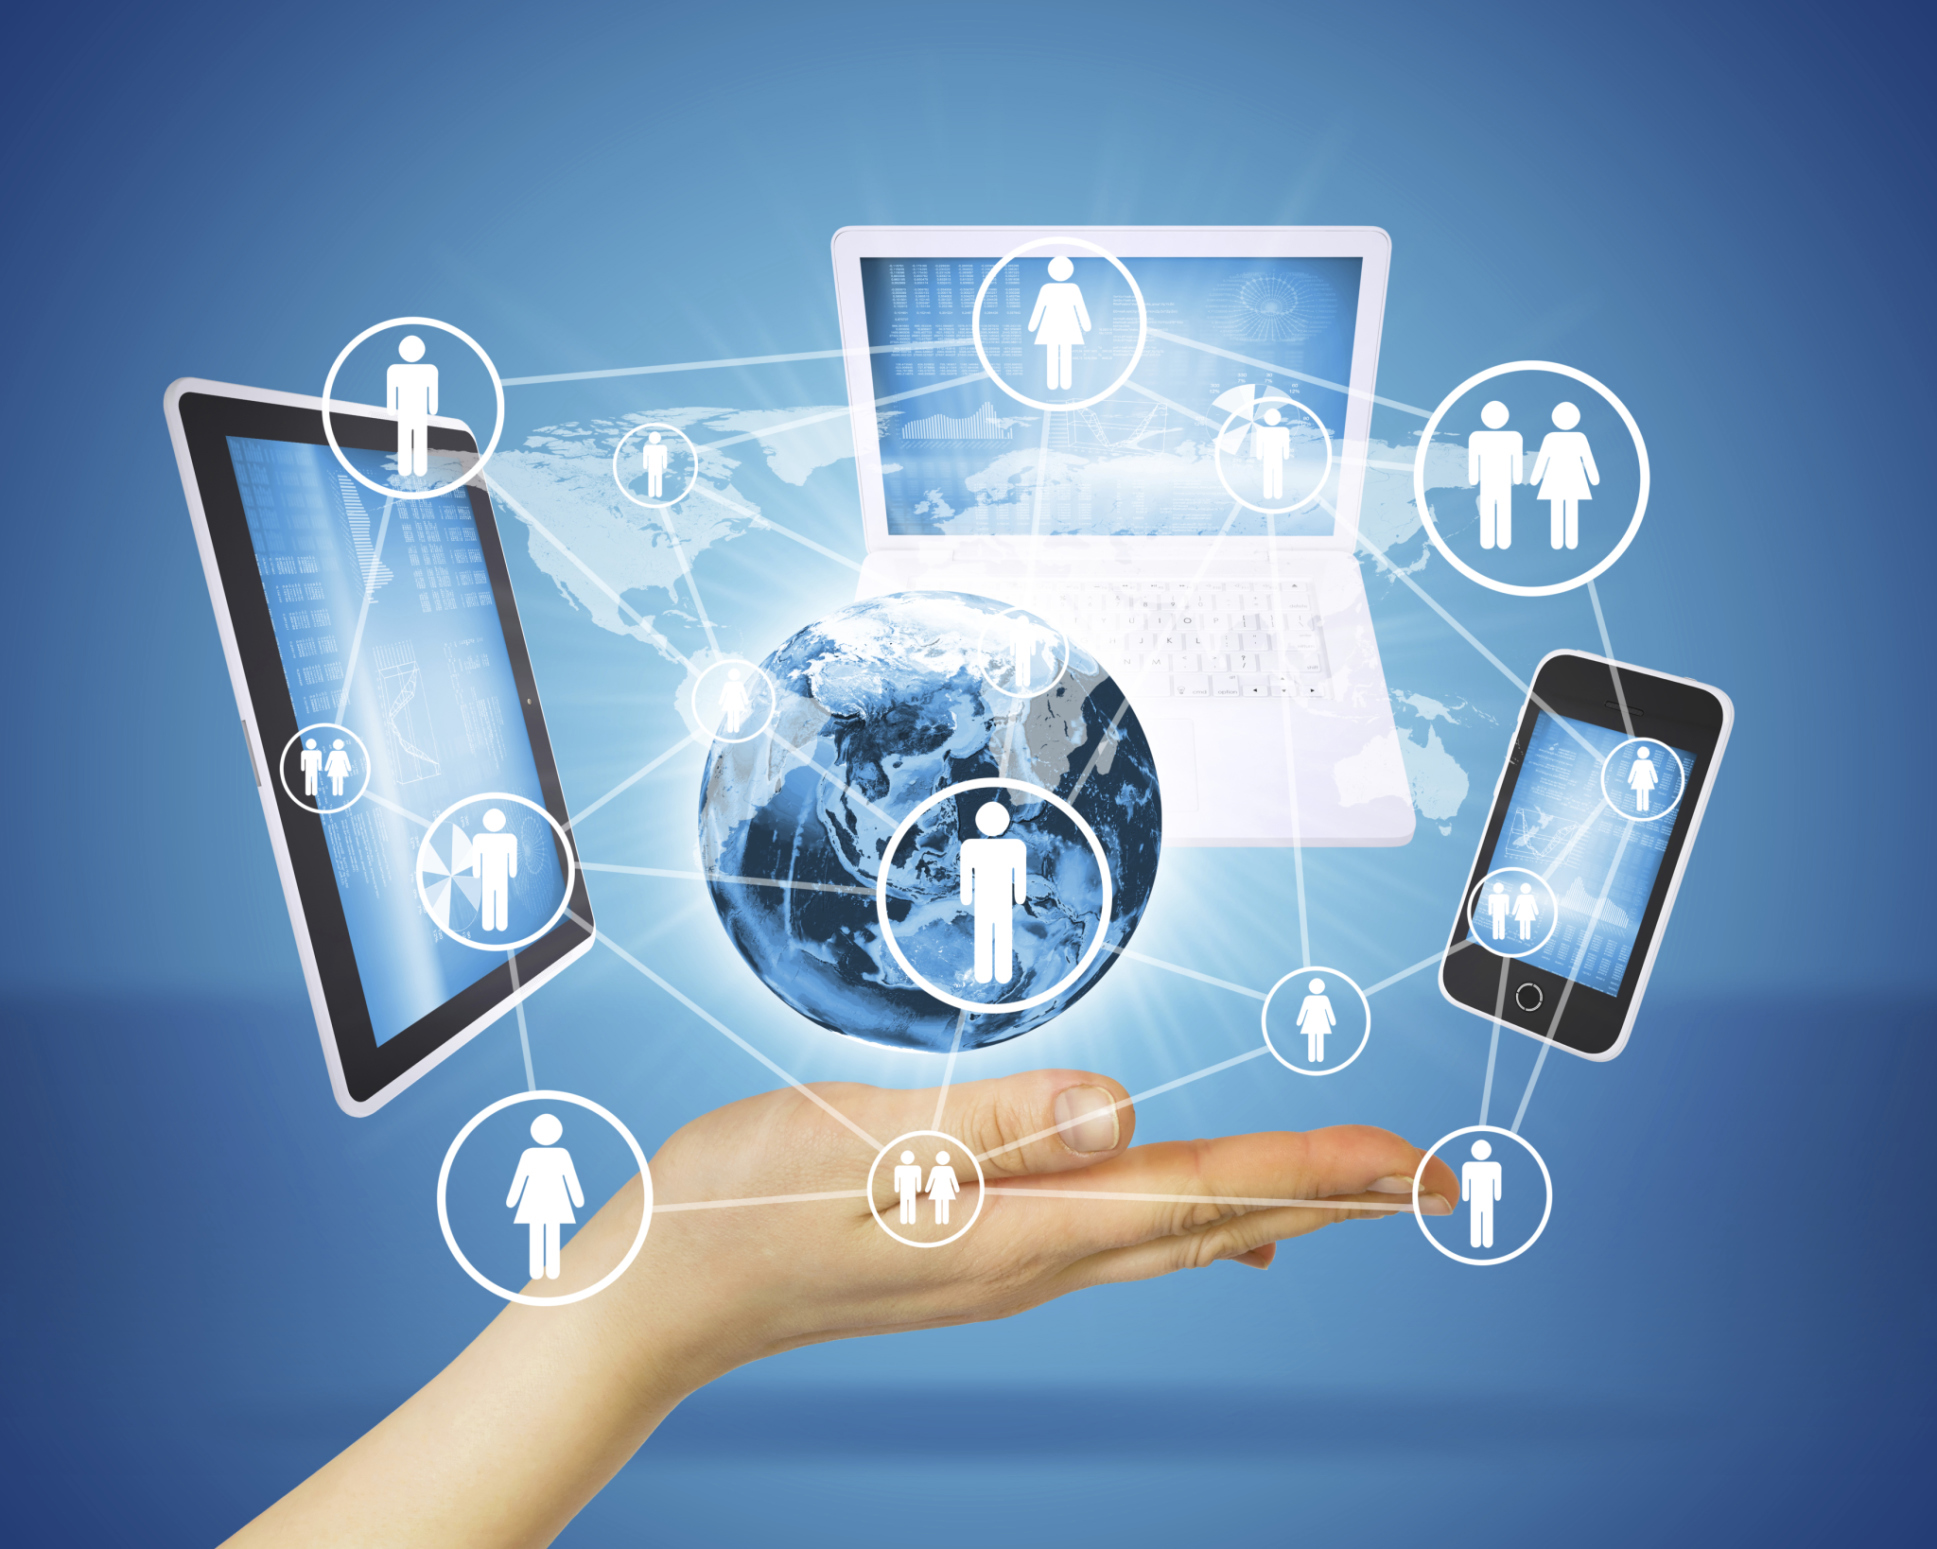 10 Steps To Finding The Right Mobile Device